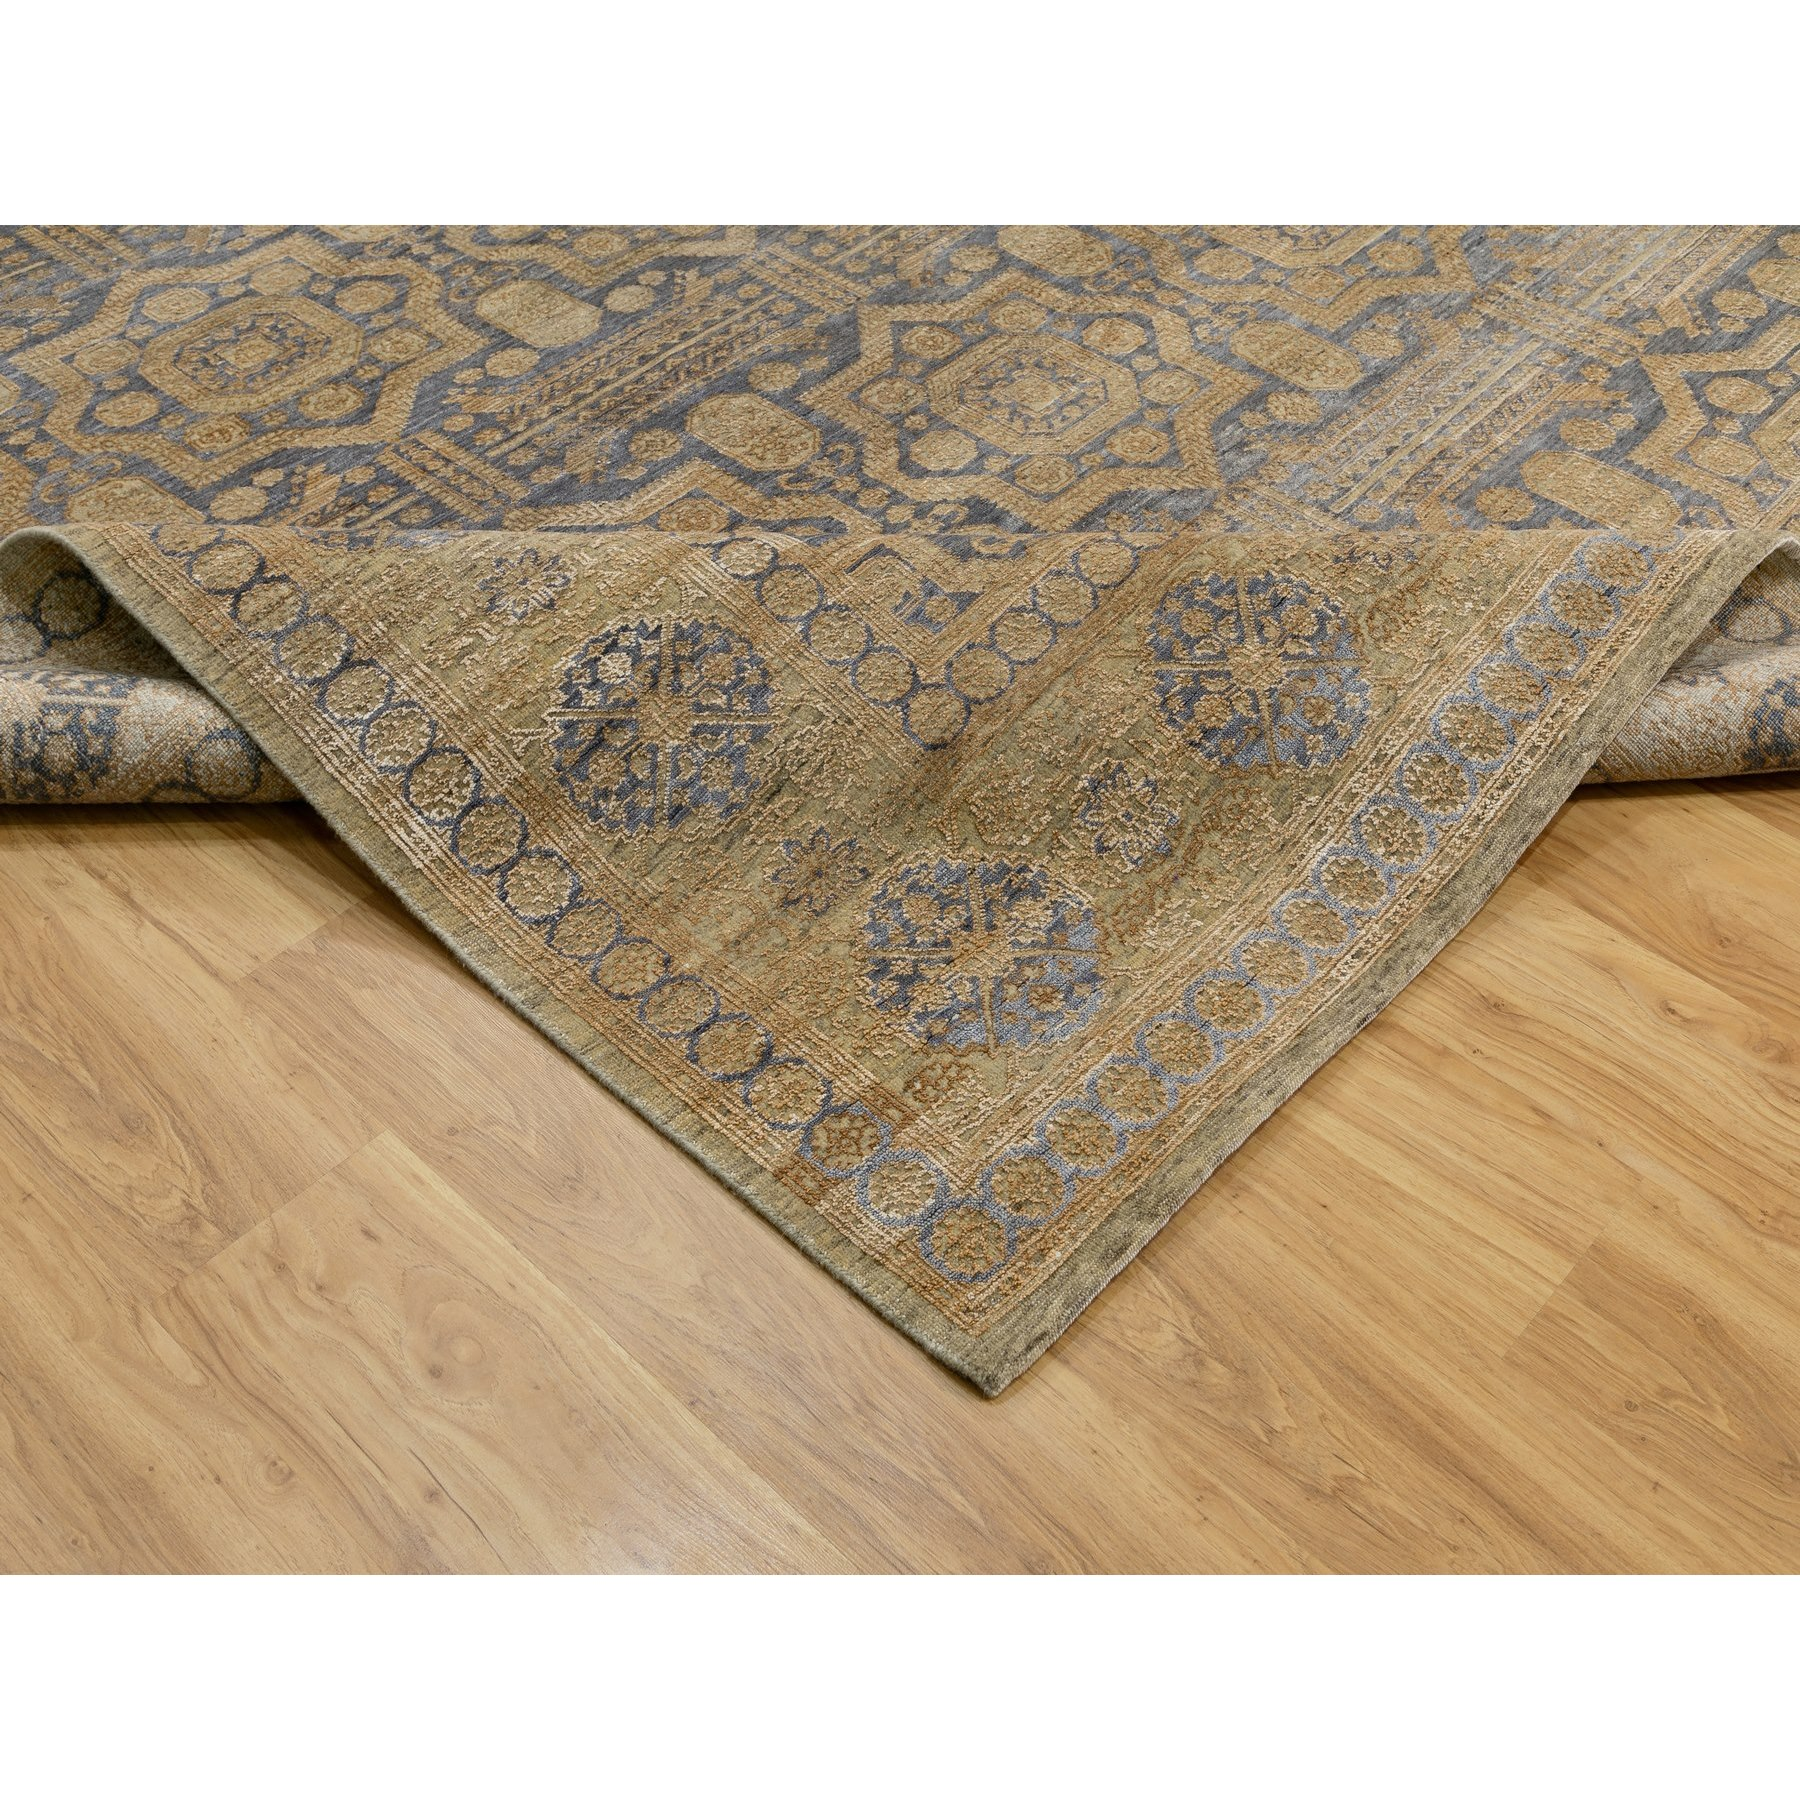 9'x12' Mamluk Antiqued Gold Design Hand Knotted Silk With Textured Wool Oriental Rug